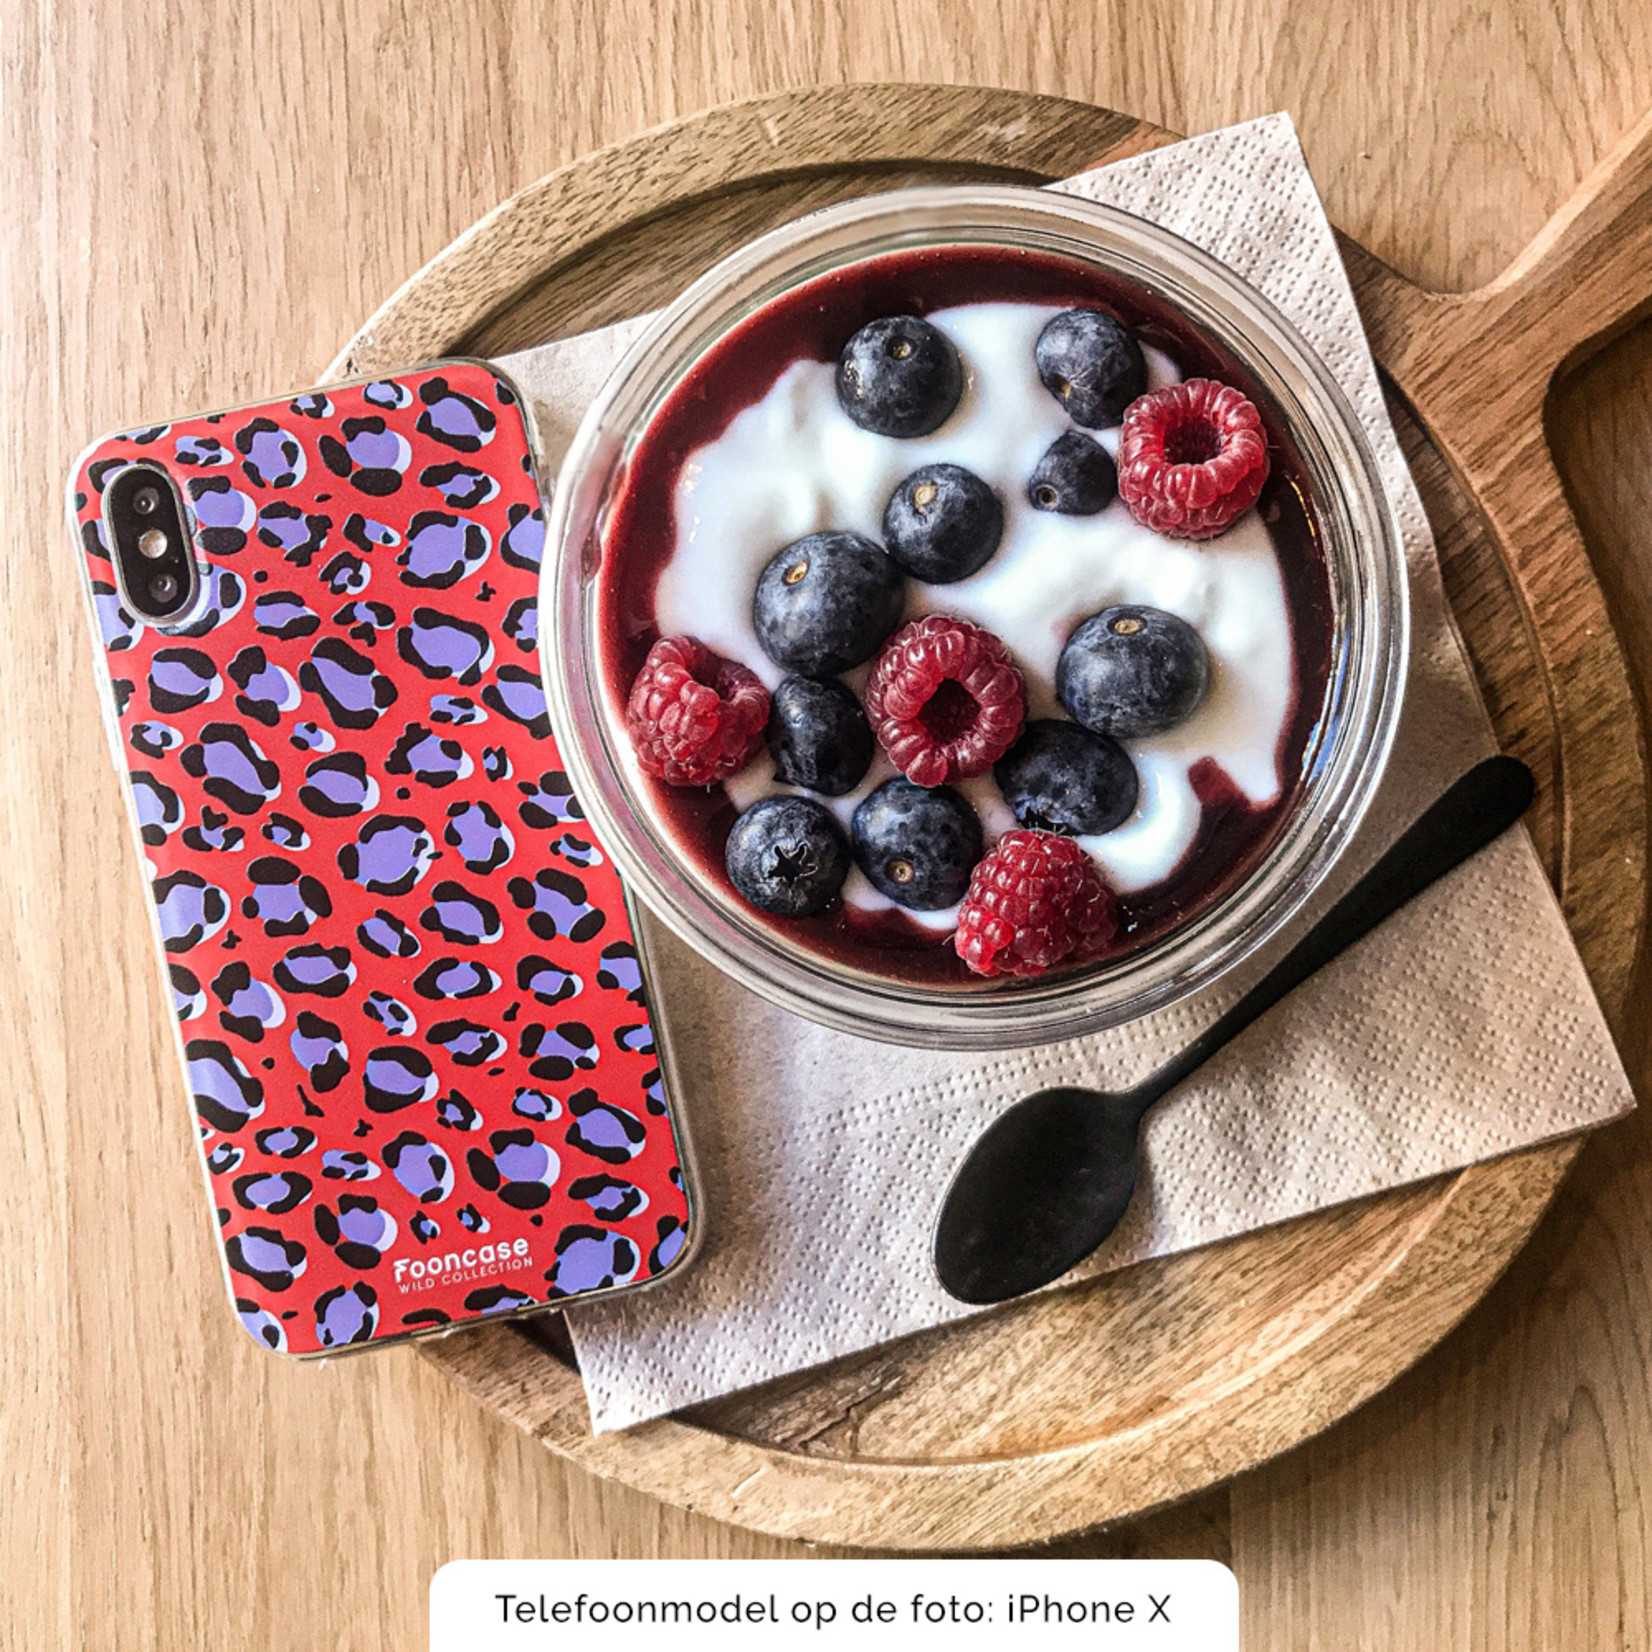 FOONCASE Samsung Galaxy S10 Plus hoesje TPU Soft Case - Back Cover - WILD COLLECTION / Luipaard / Leopard print / Rood